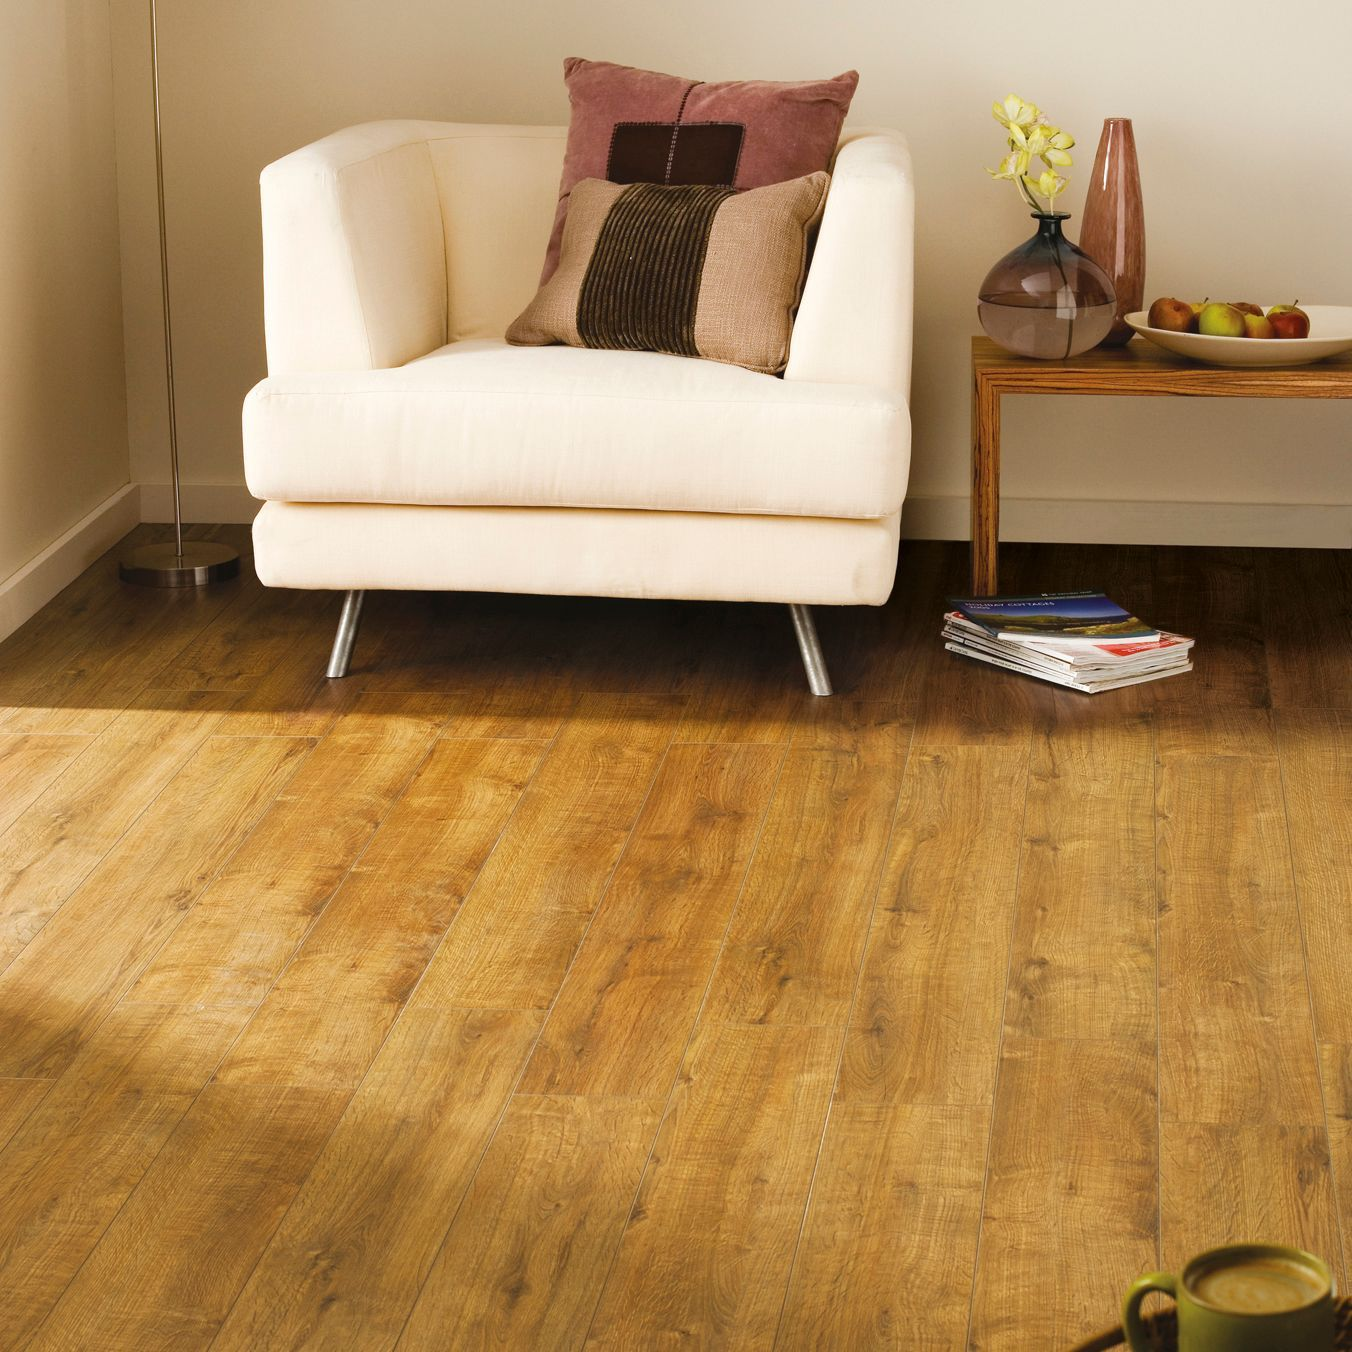 Concertino Kolberg Oak Effect Laminate Flooring 1 48 M² Pack